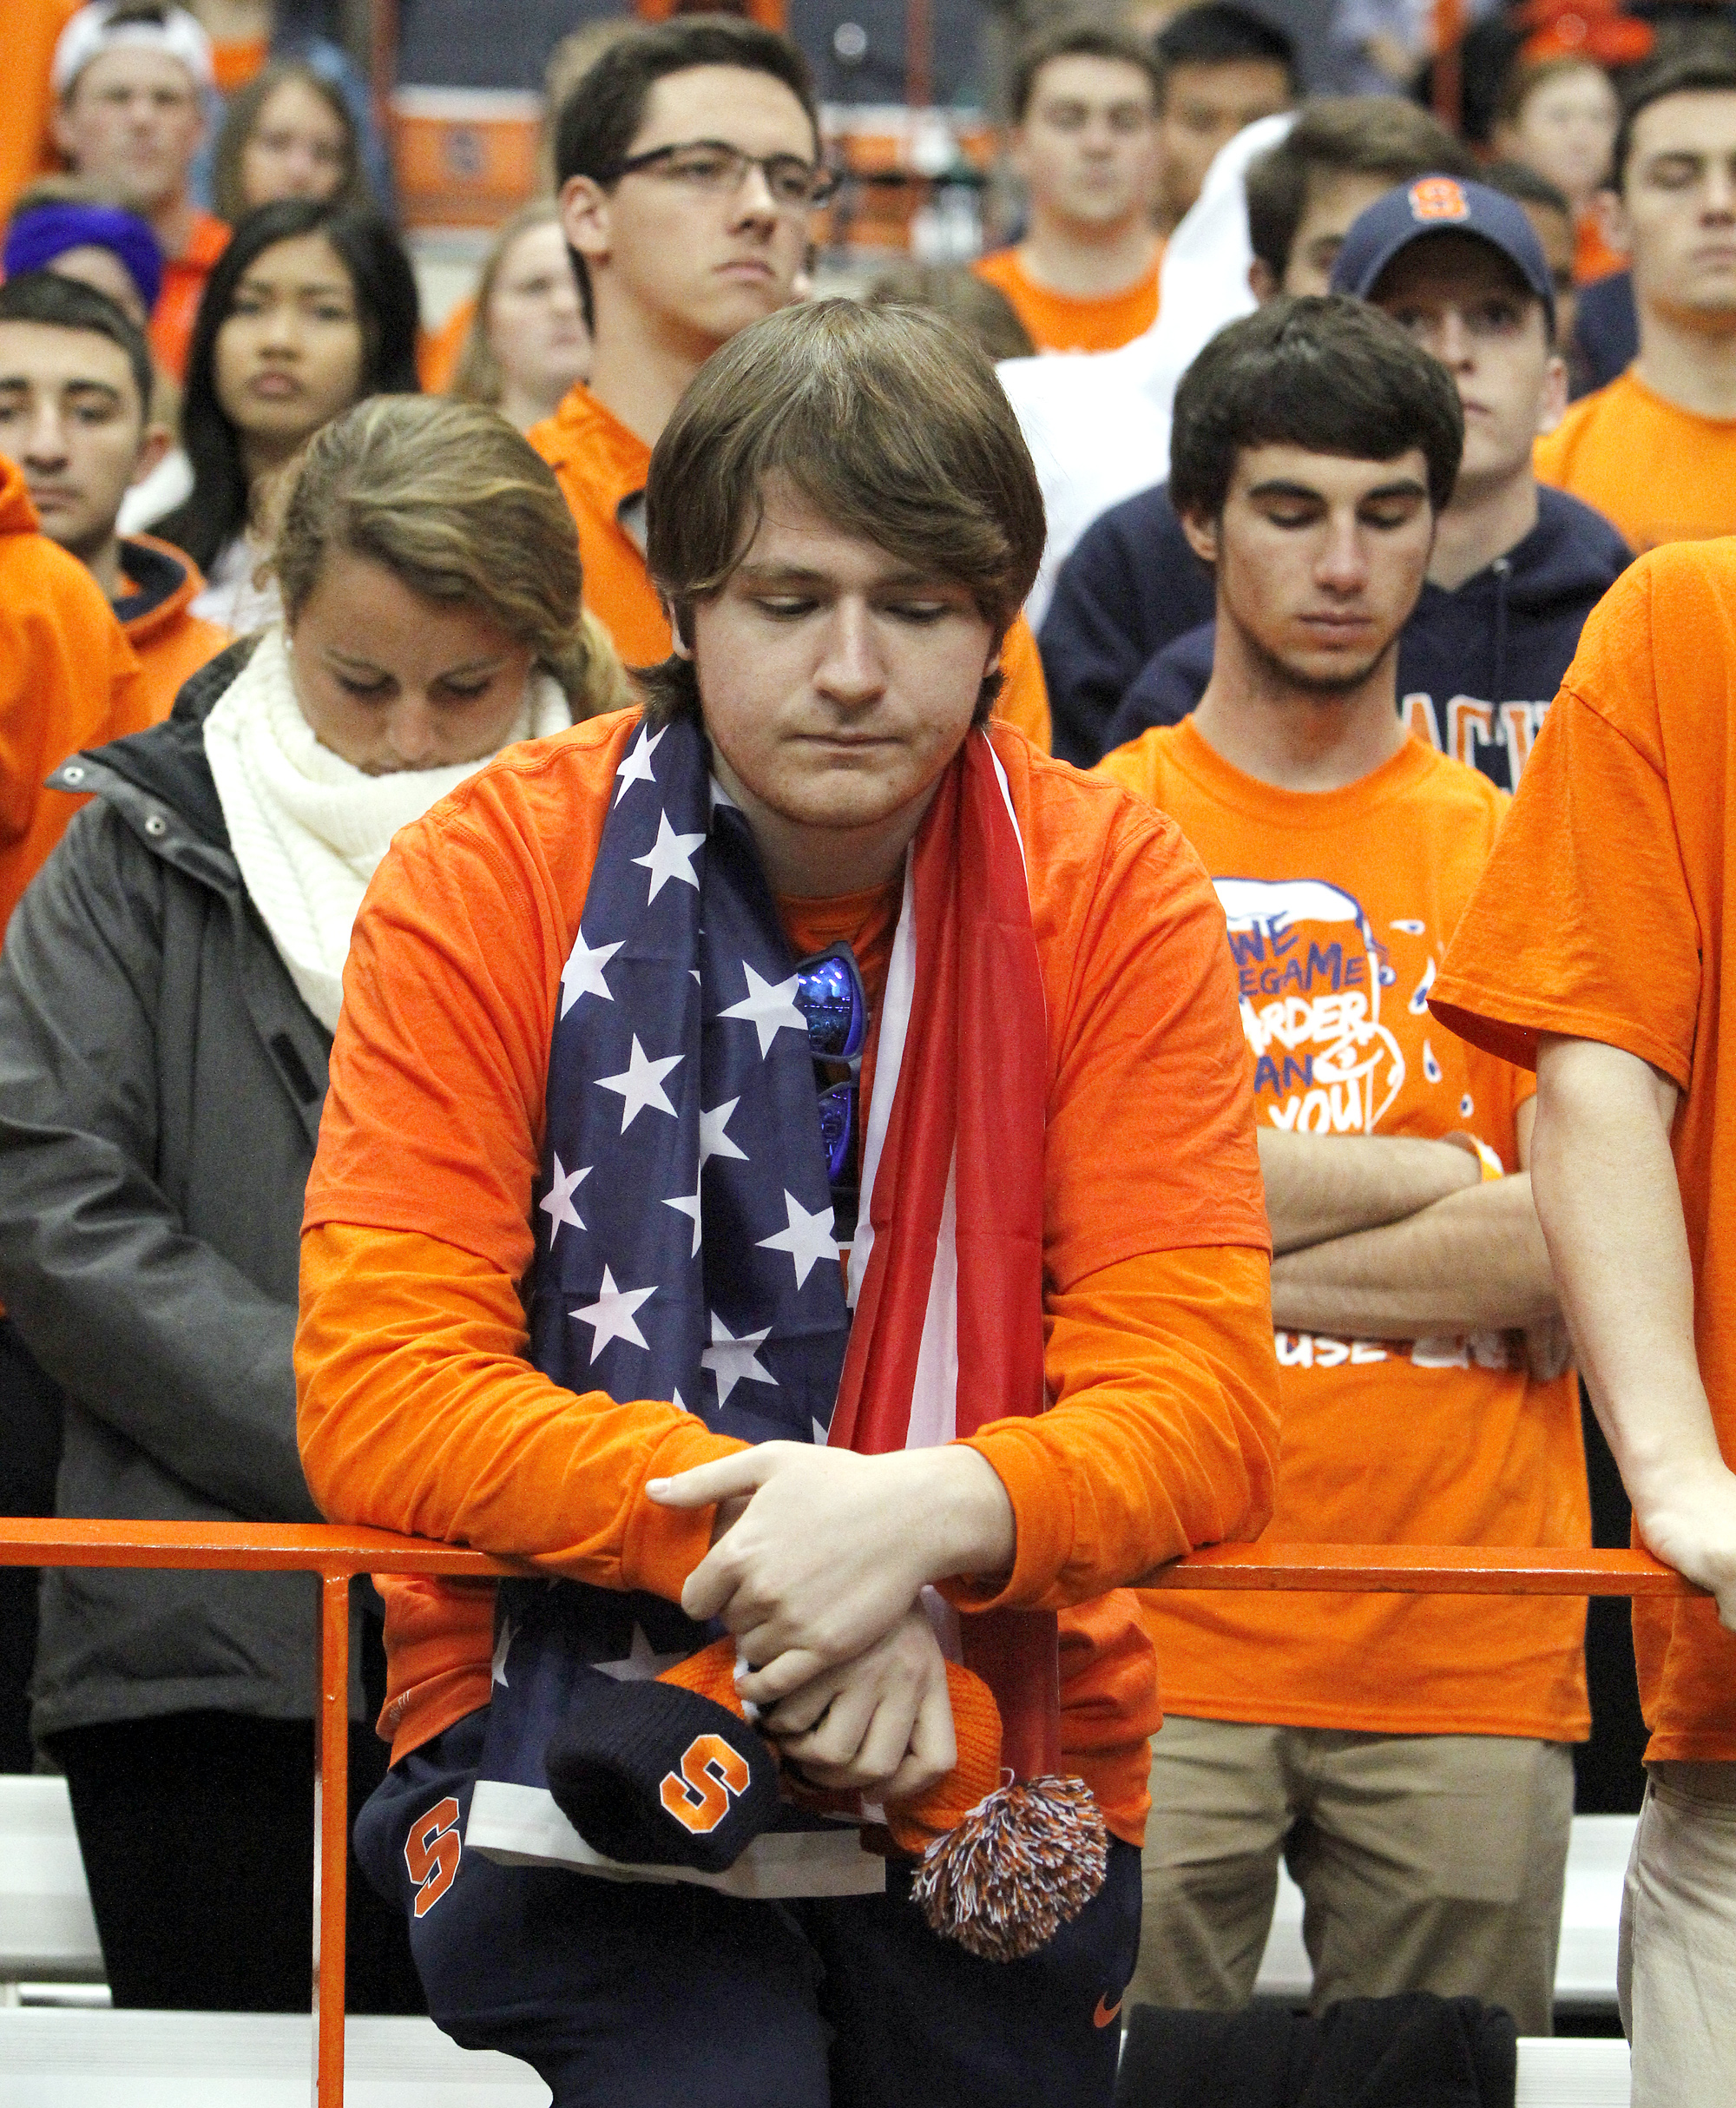 Jake Narracci, of North Branford, Conn., observes a moment of silence for the victims of the attacks in Paris before an NCAA college football game between Clemson and Syracuse in Syracuse, N.Y., Saturday, Nov. 14, 2015. (AP Photo/Nick Lisi)